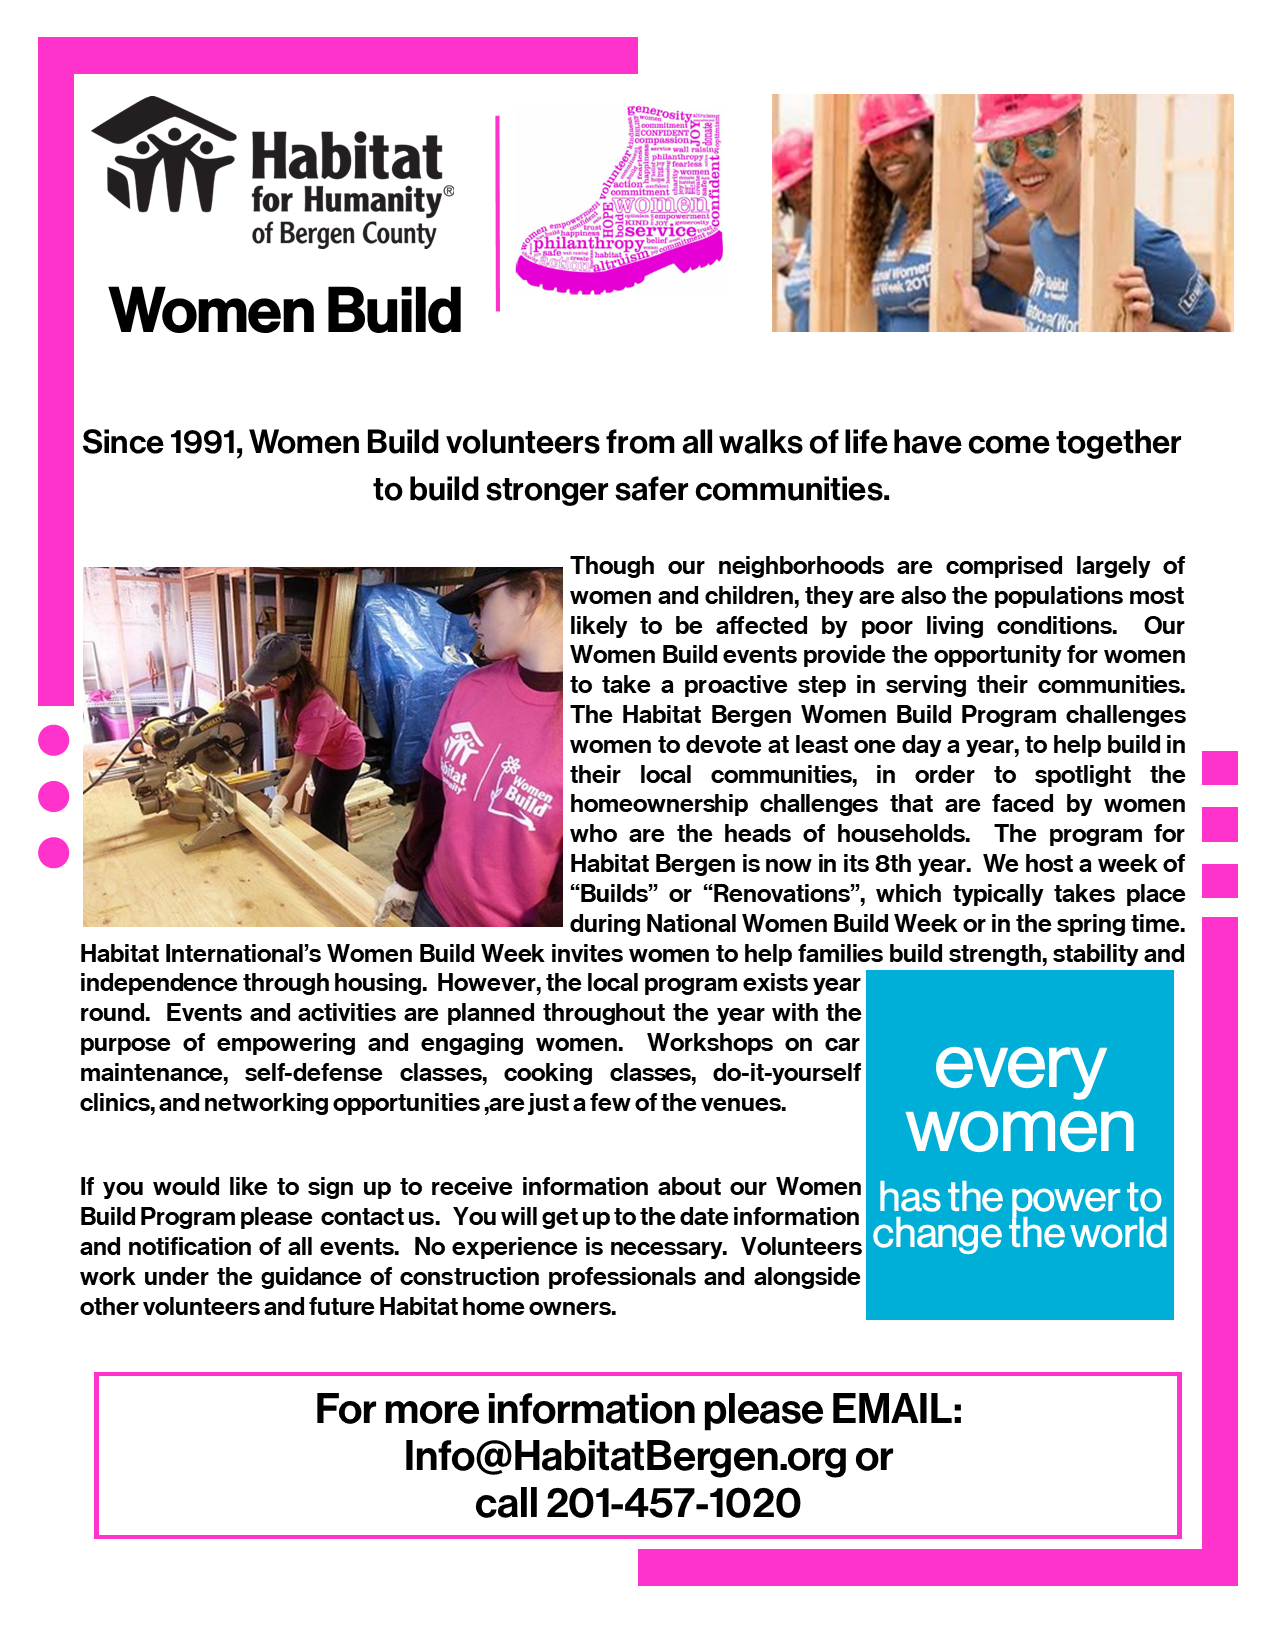 women_build_info_page_png2.png